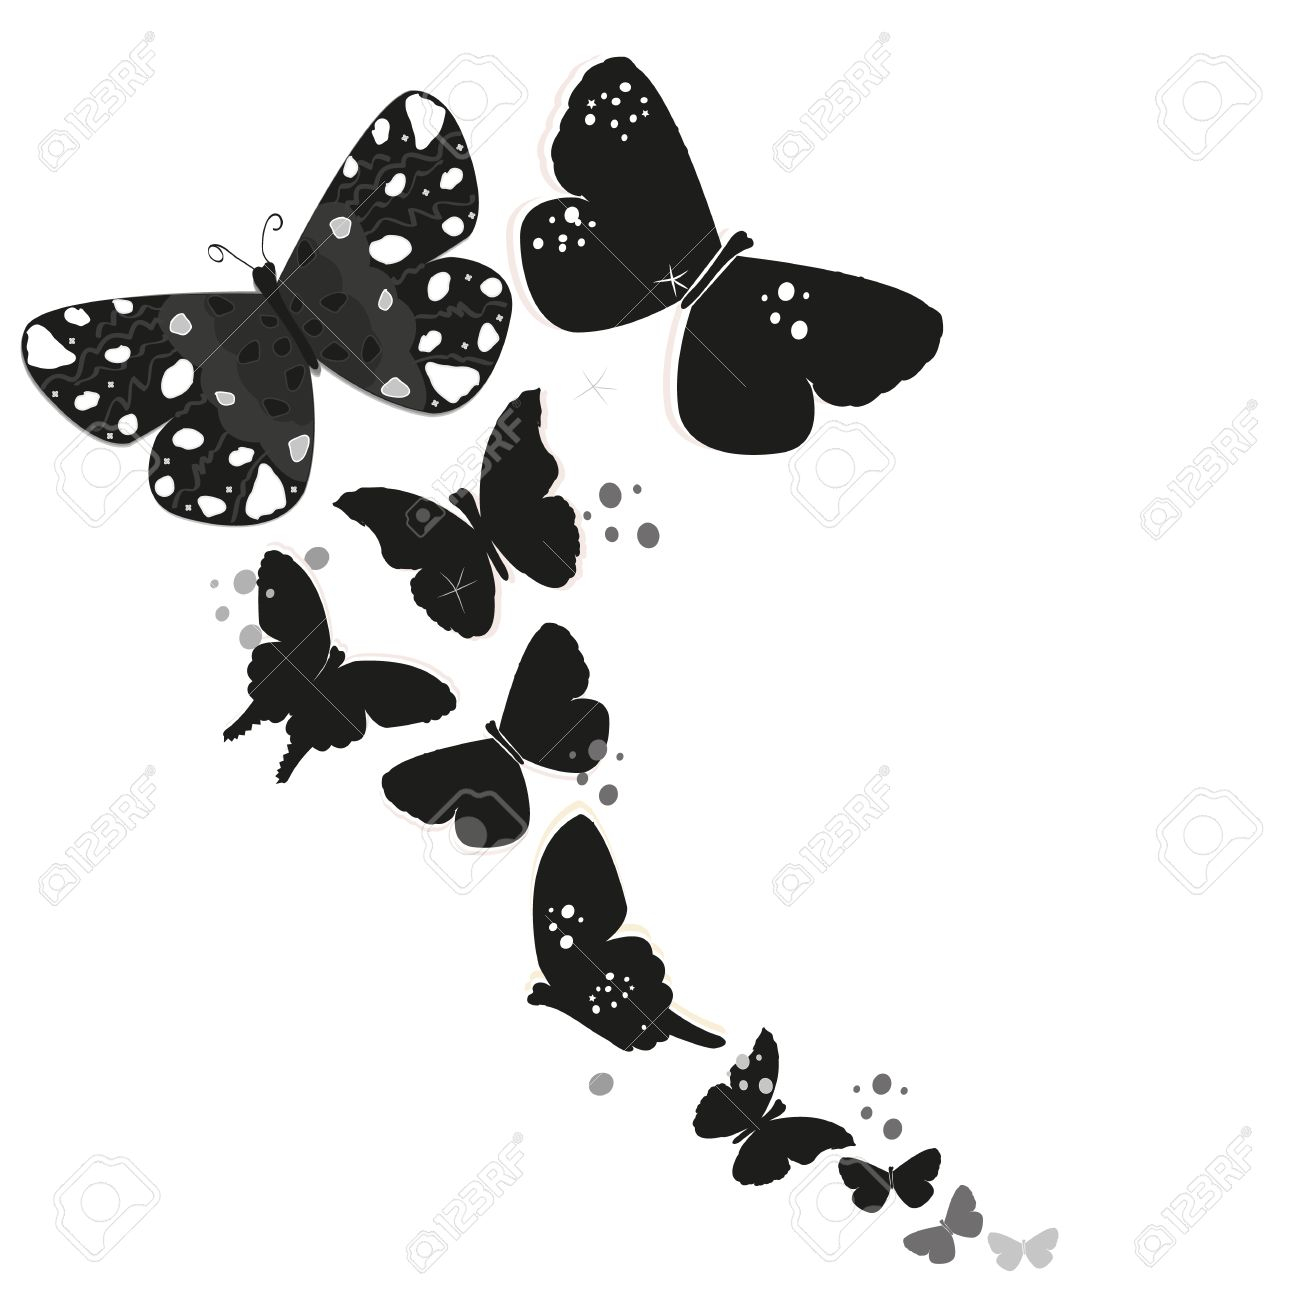 photo stock vector black butterfly design and abstract decorative flowers vector background